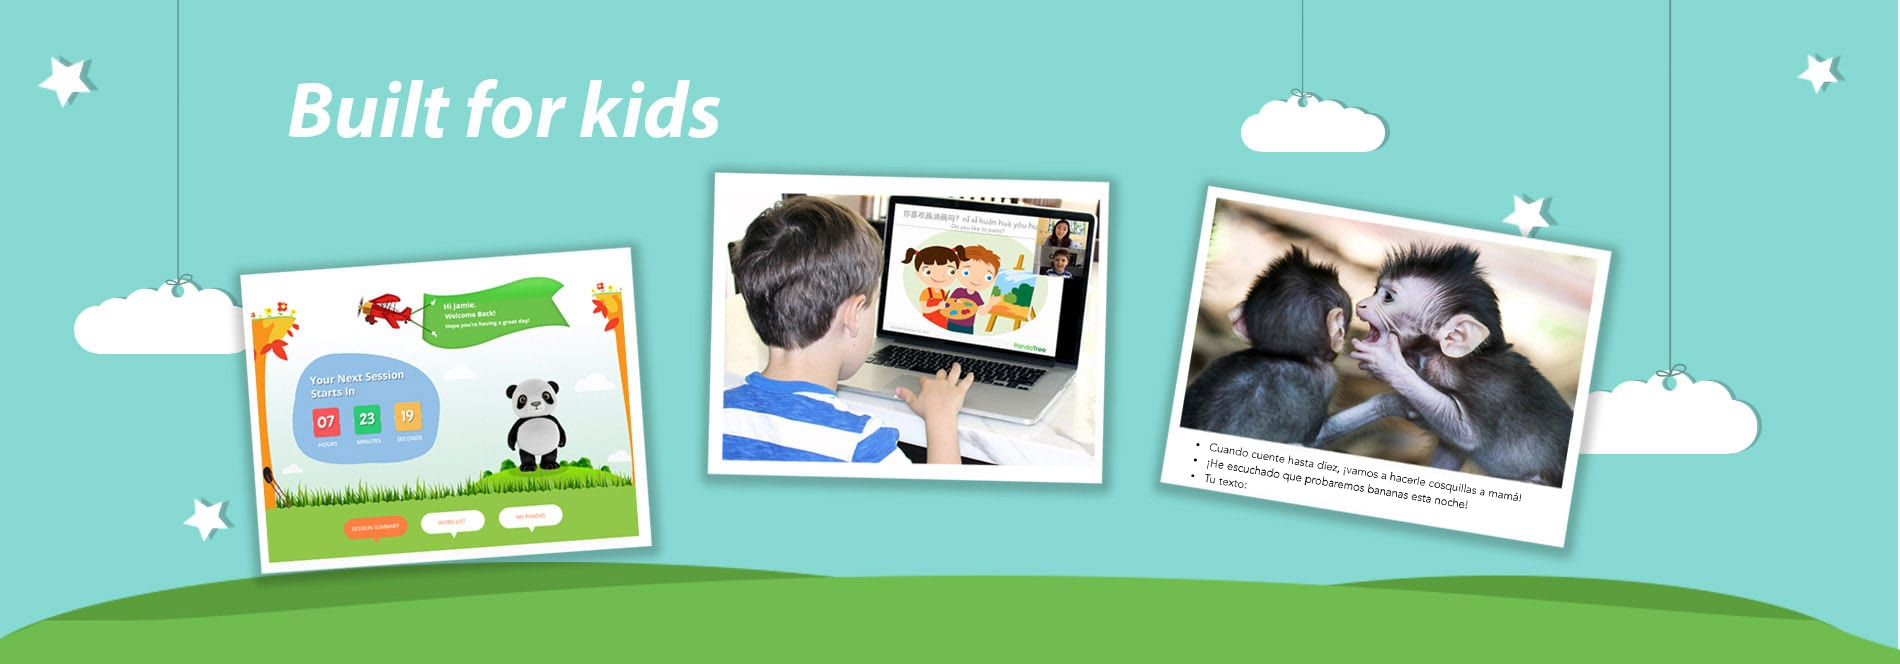 Foreign language tutoring built specifically for kids.